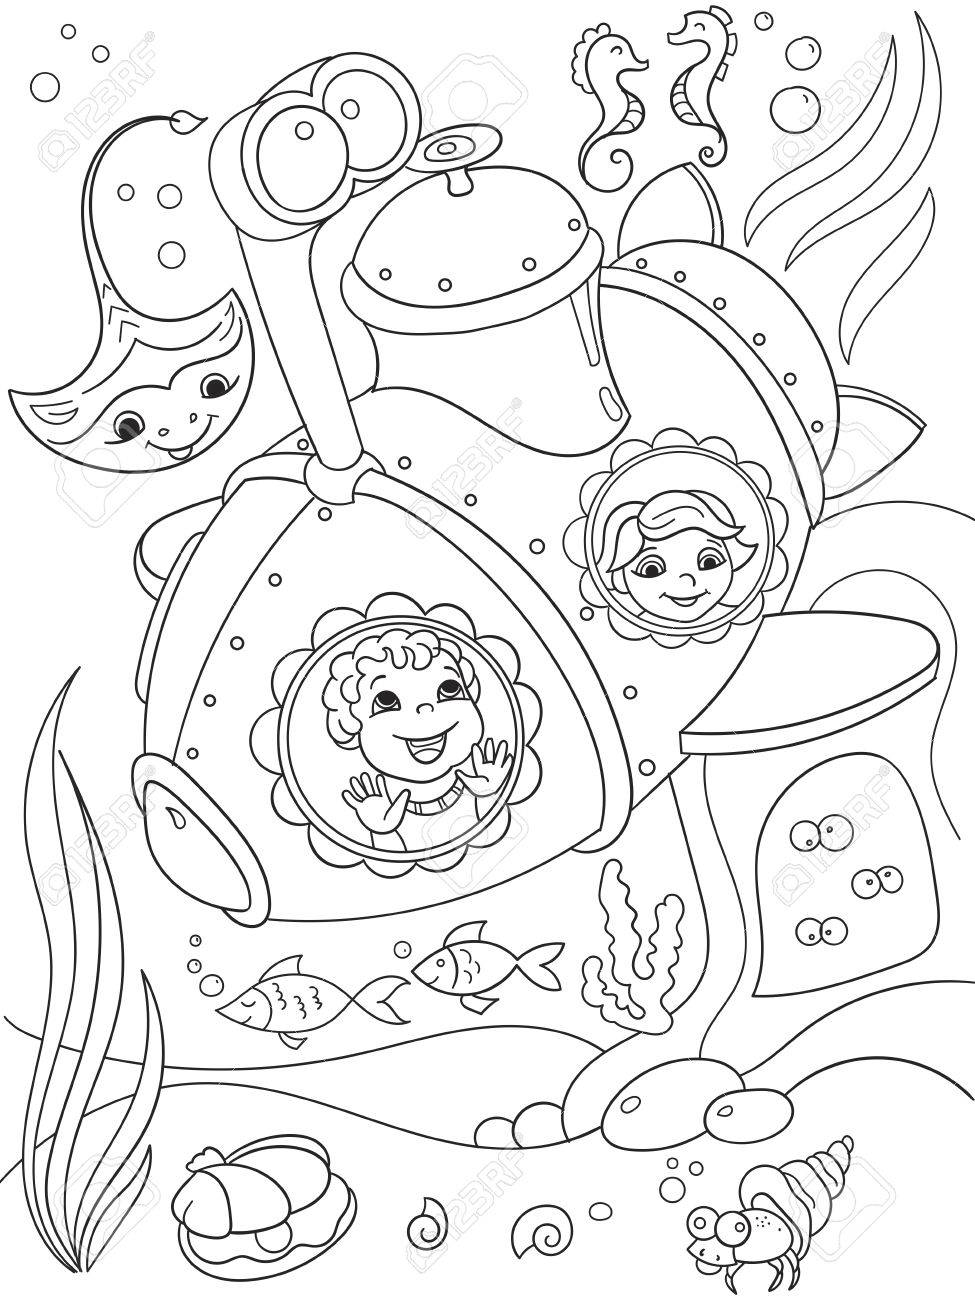 Coloring pages: Coloring pages: Submarine, printable for kids ... | 1300x975